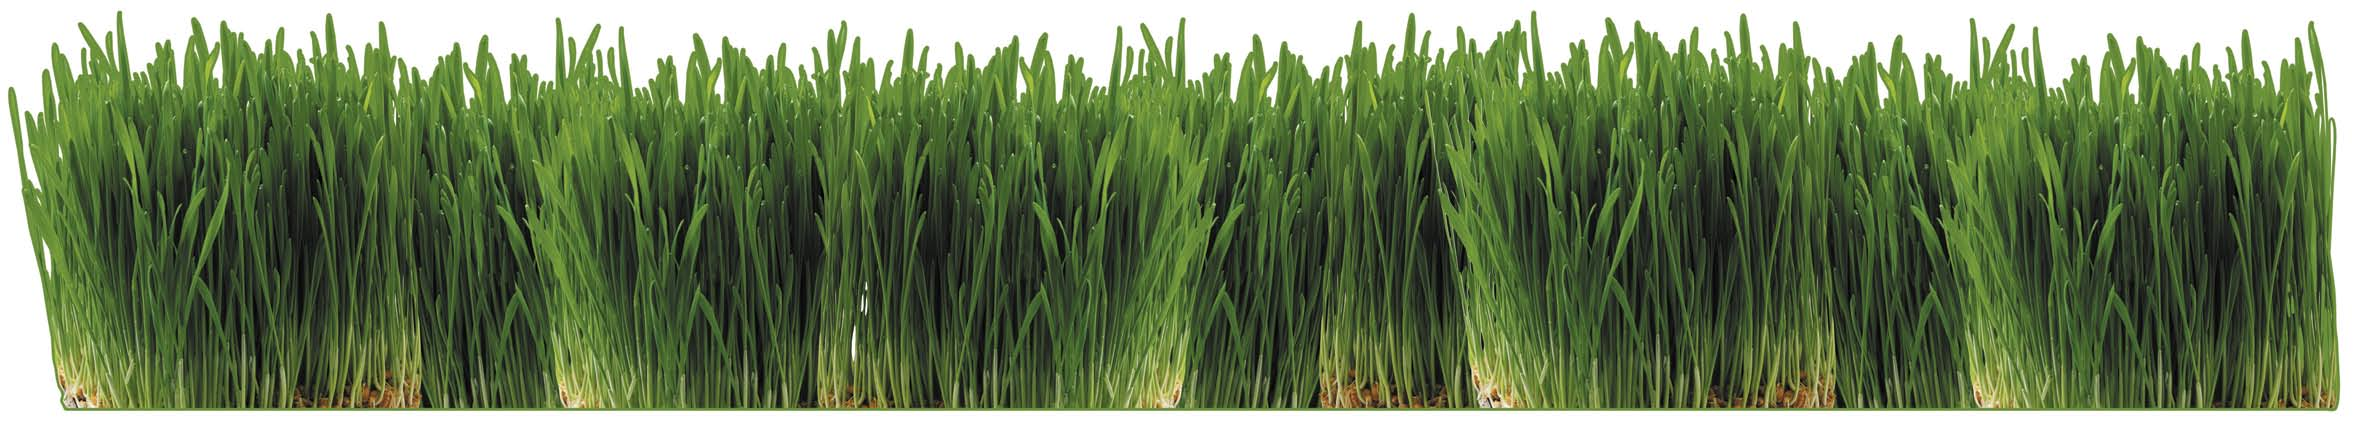 To germinate cool season grass (such as winter rye), apply light, frequent waterings up to four times a day during the first seven to ten days Gradually increase run time and decrease frequency as